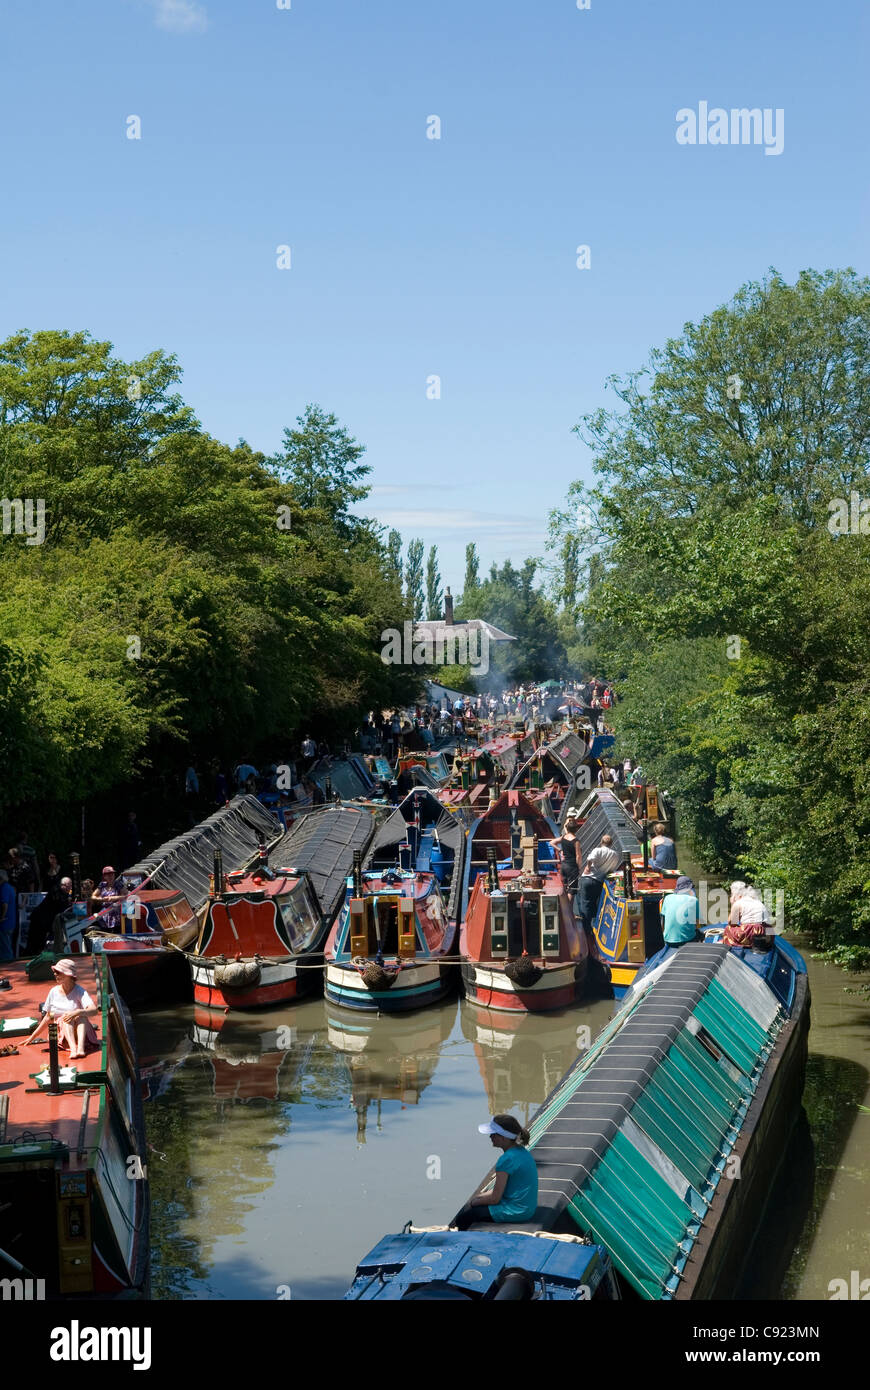 Grand Union Canal. Restored working narrowboats moored at the Braunston Historic Narrowboat rally 2011. - Stock Image